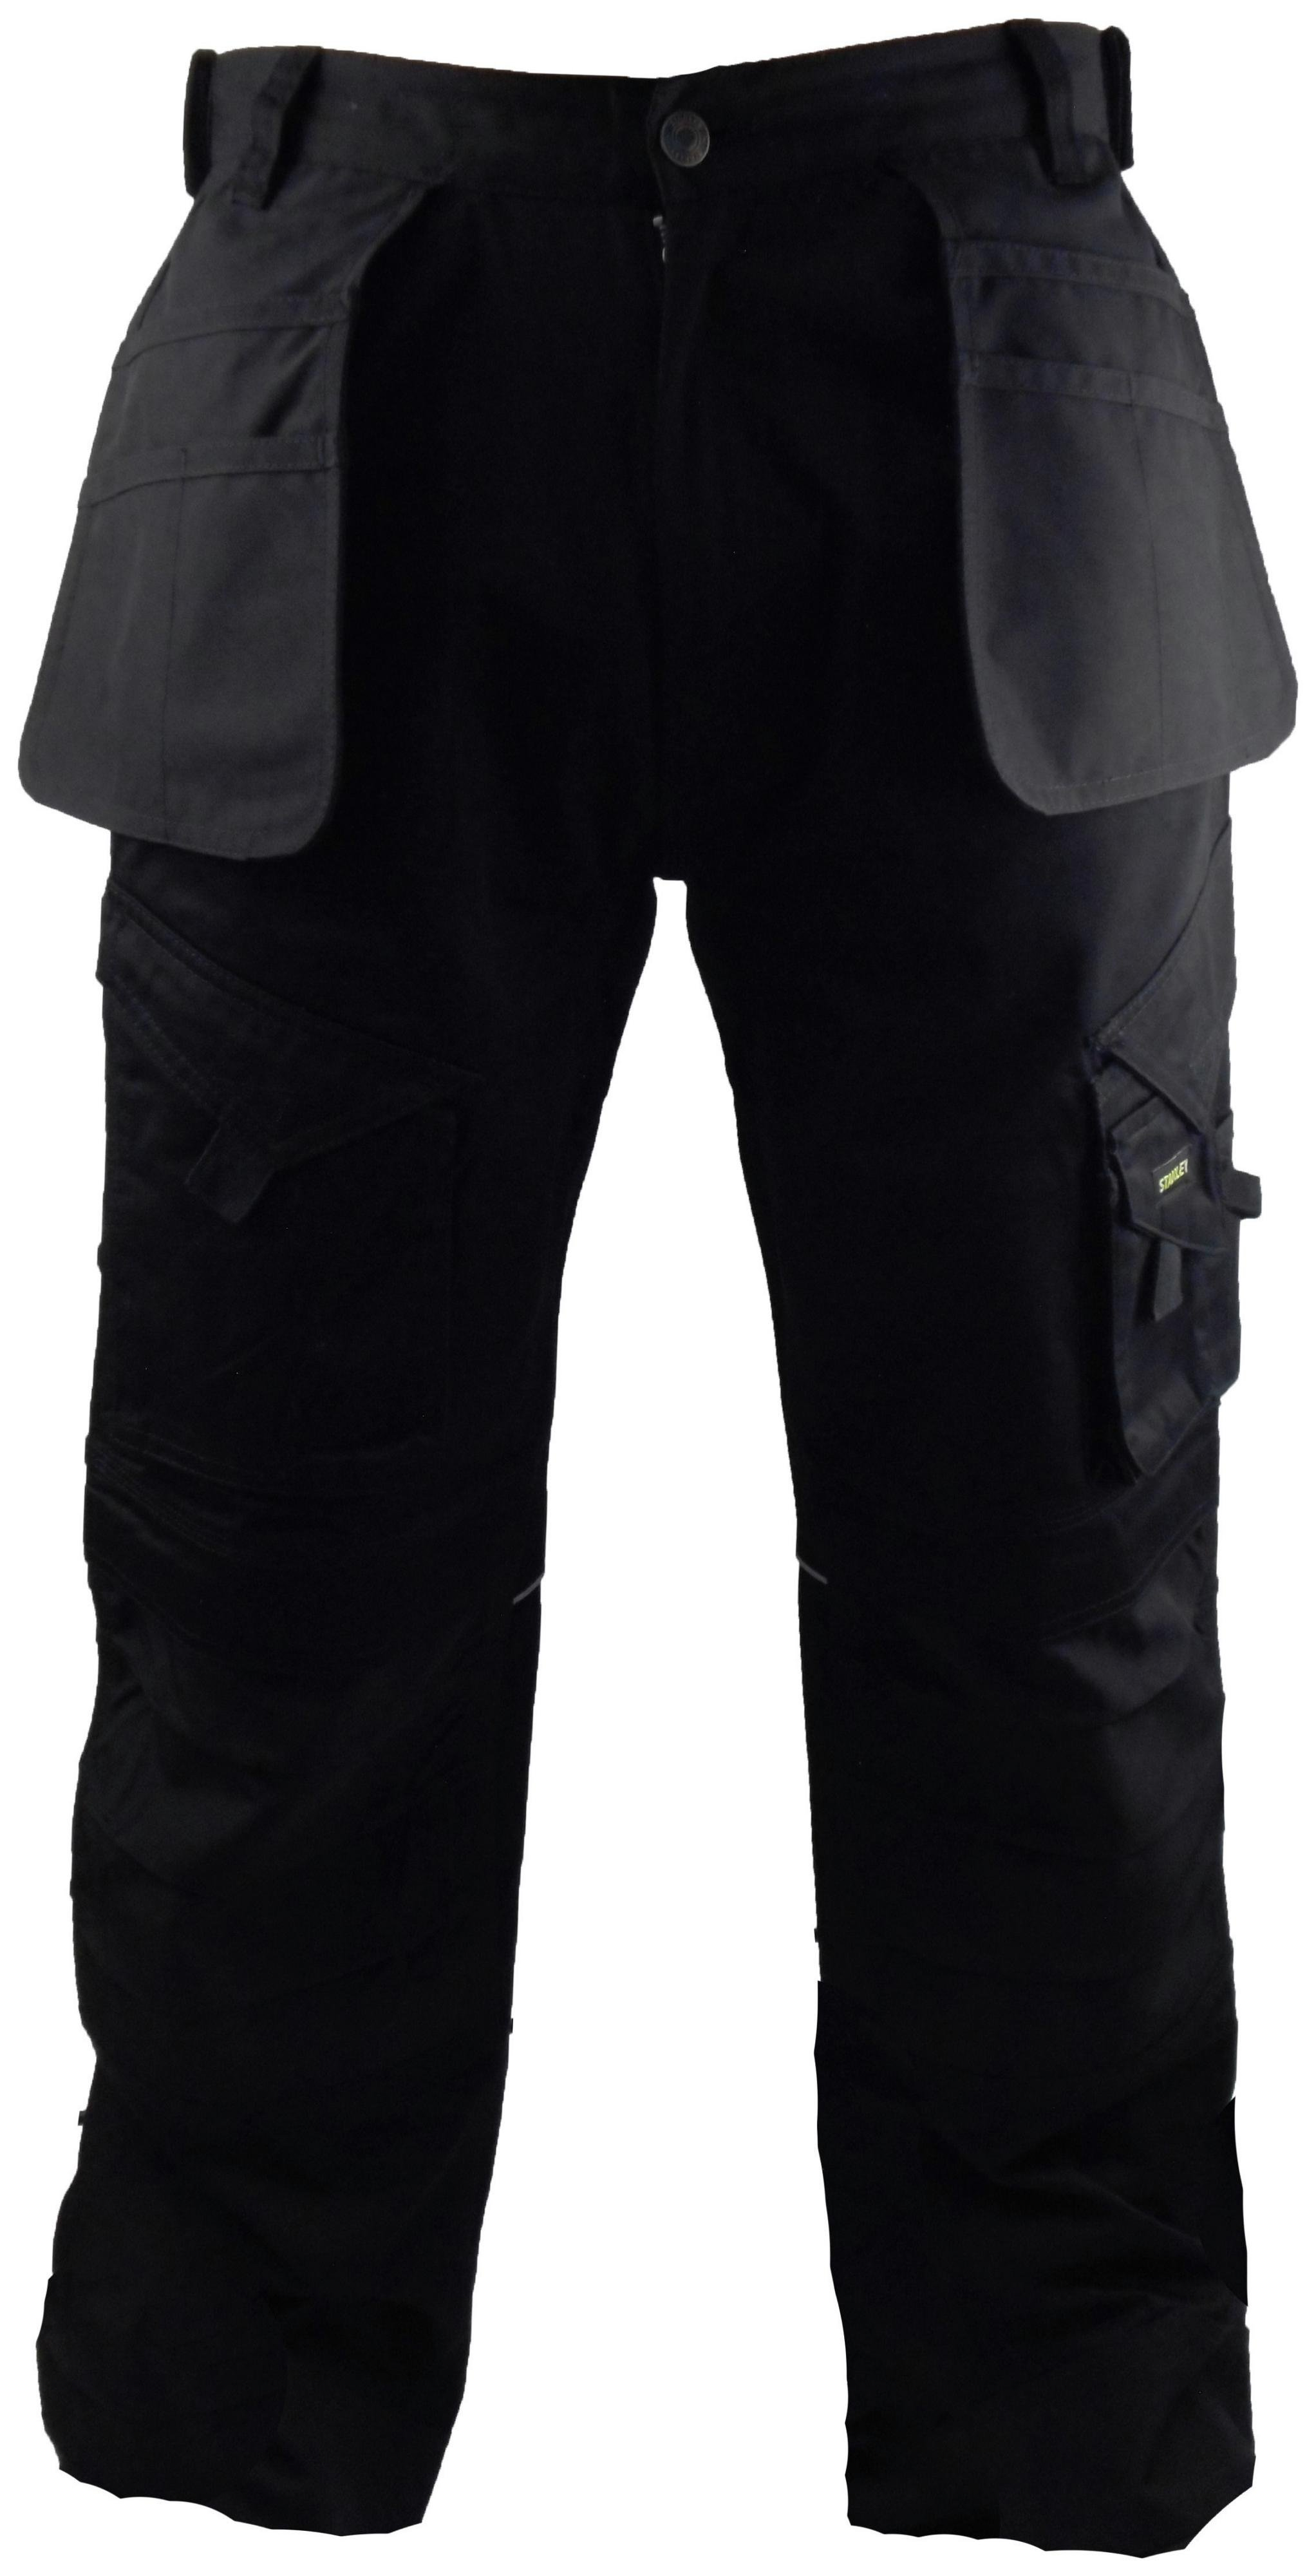 Image of Stanley Colorado Men's Black Trouser - 32 to 33 inch.